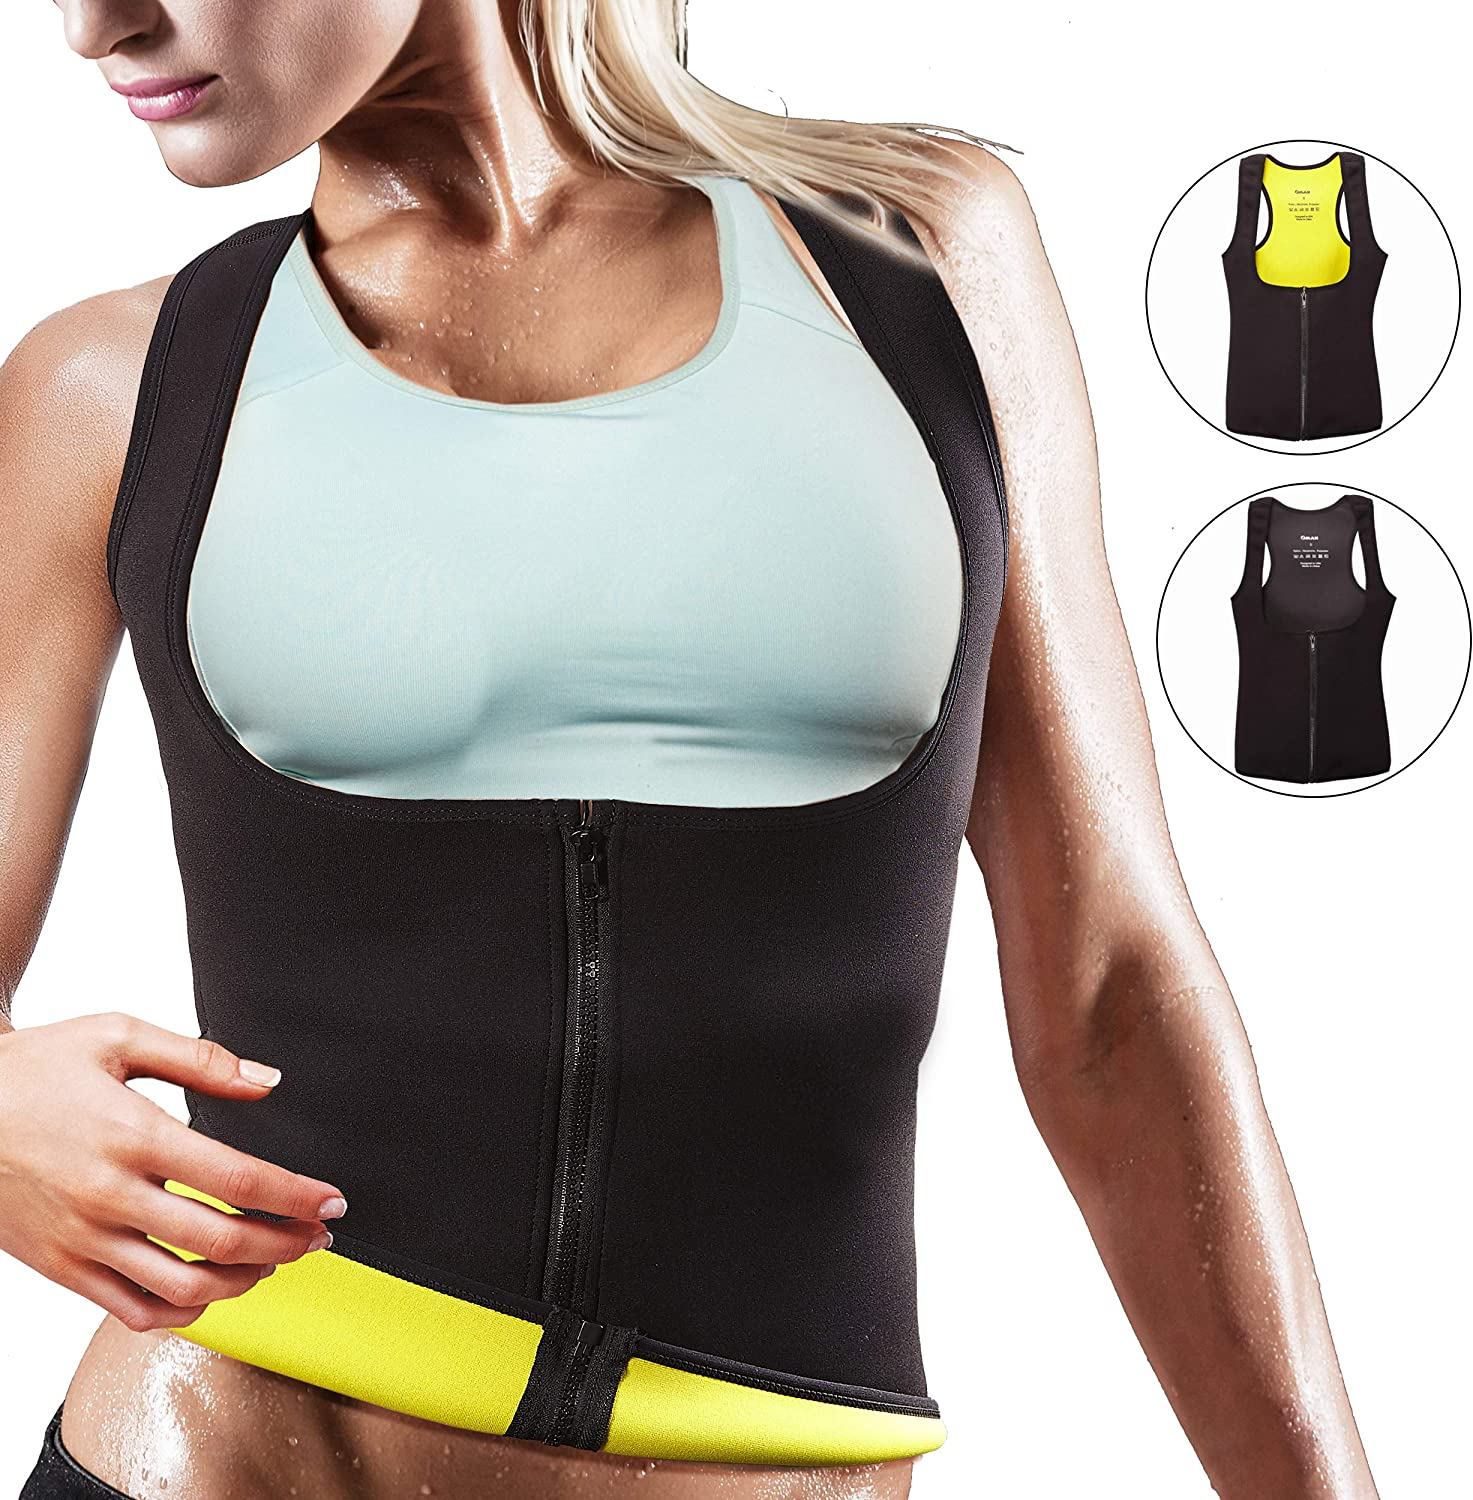 Body Shaper Tank Top Workout Training Fat Burning Slim Corset for Women Designed in The USA OMAX Women Waist Trainer Vest with Zipper Neoprene Sauna Sweat Vest for Weight Loss